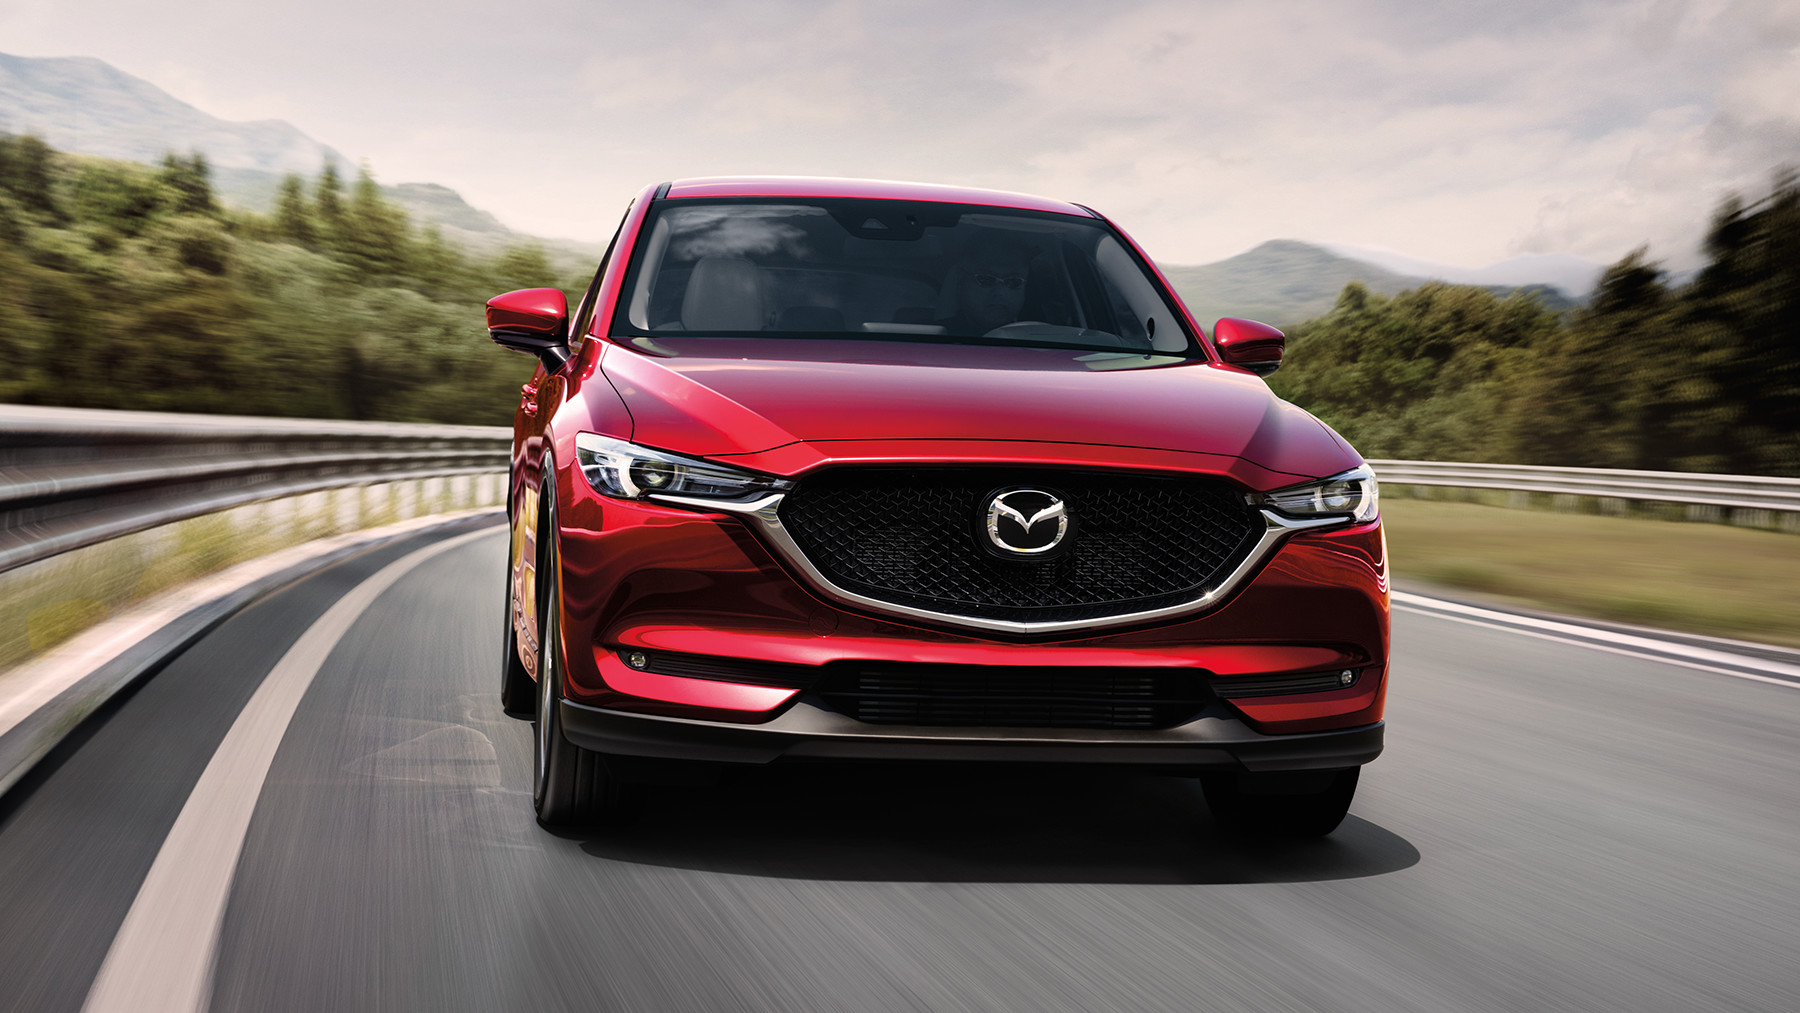 2017 mazda cx 5 crossover pictures videos mazda usa. Black Bedroom Furniture Sets. Home Design Ideas